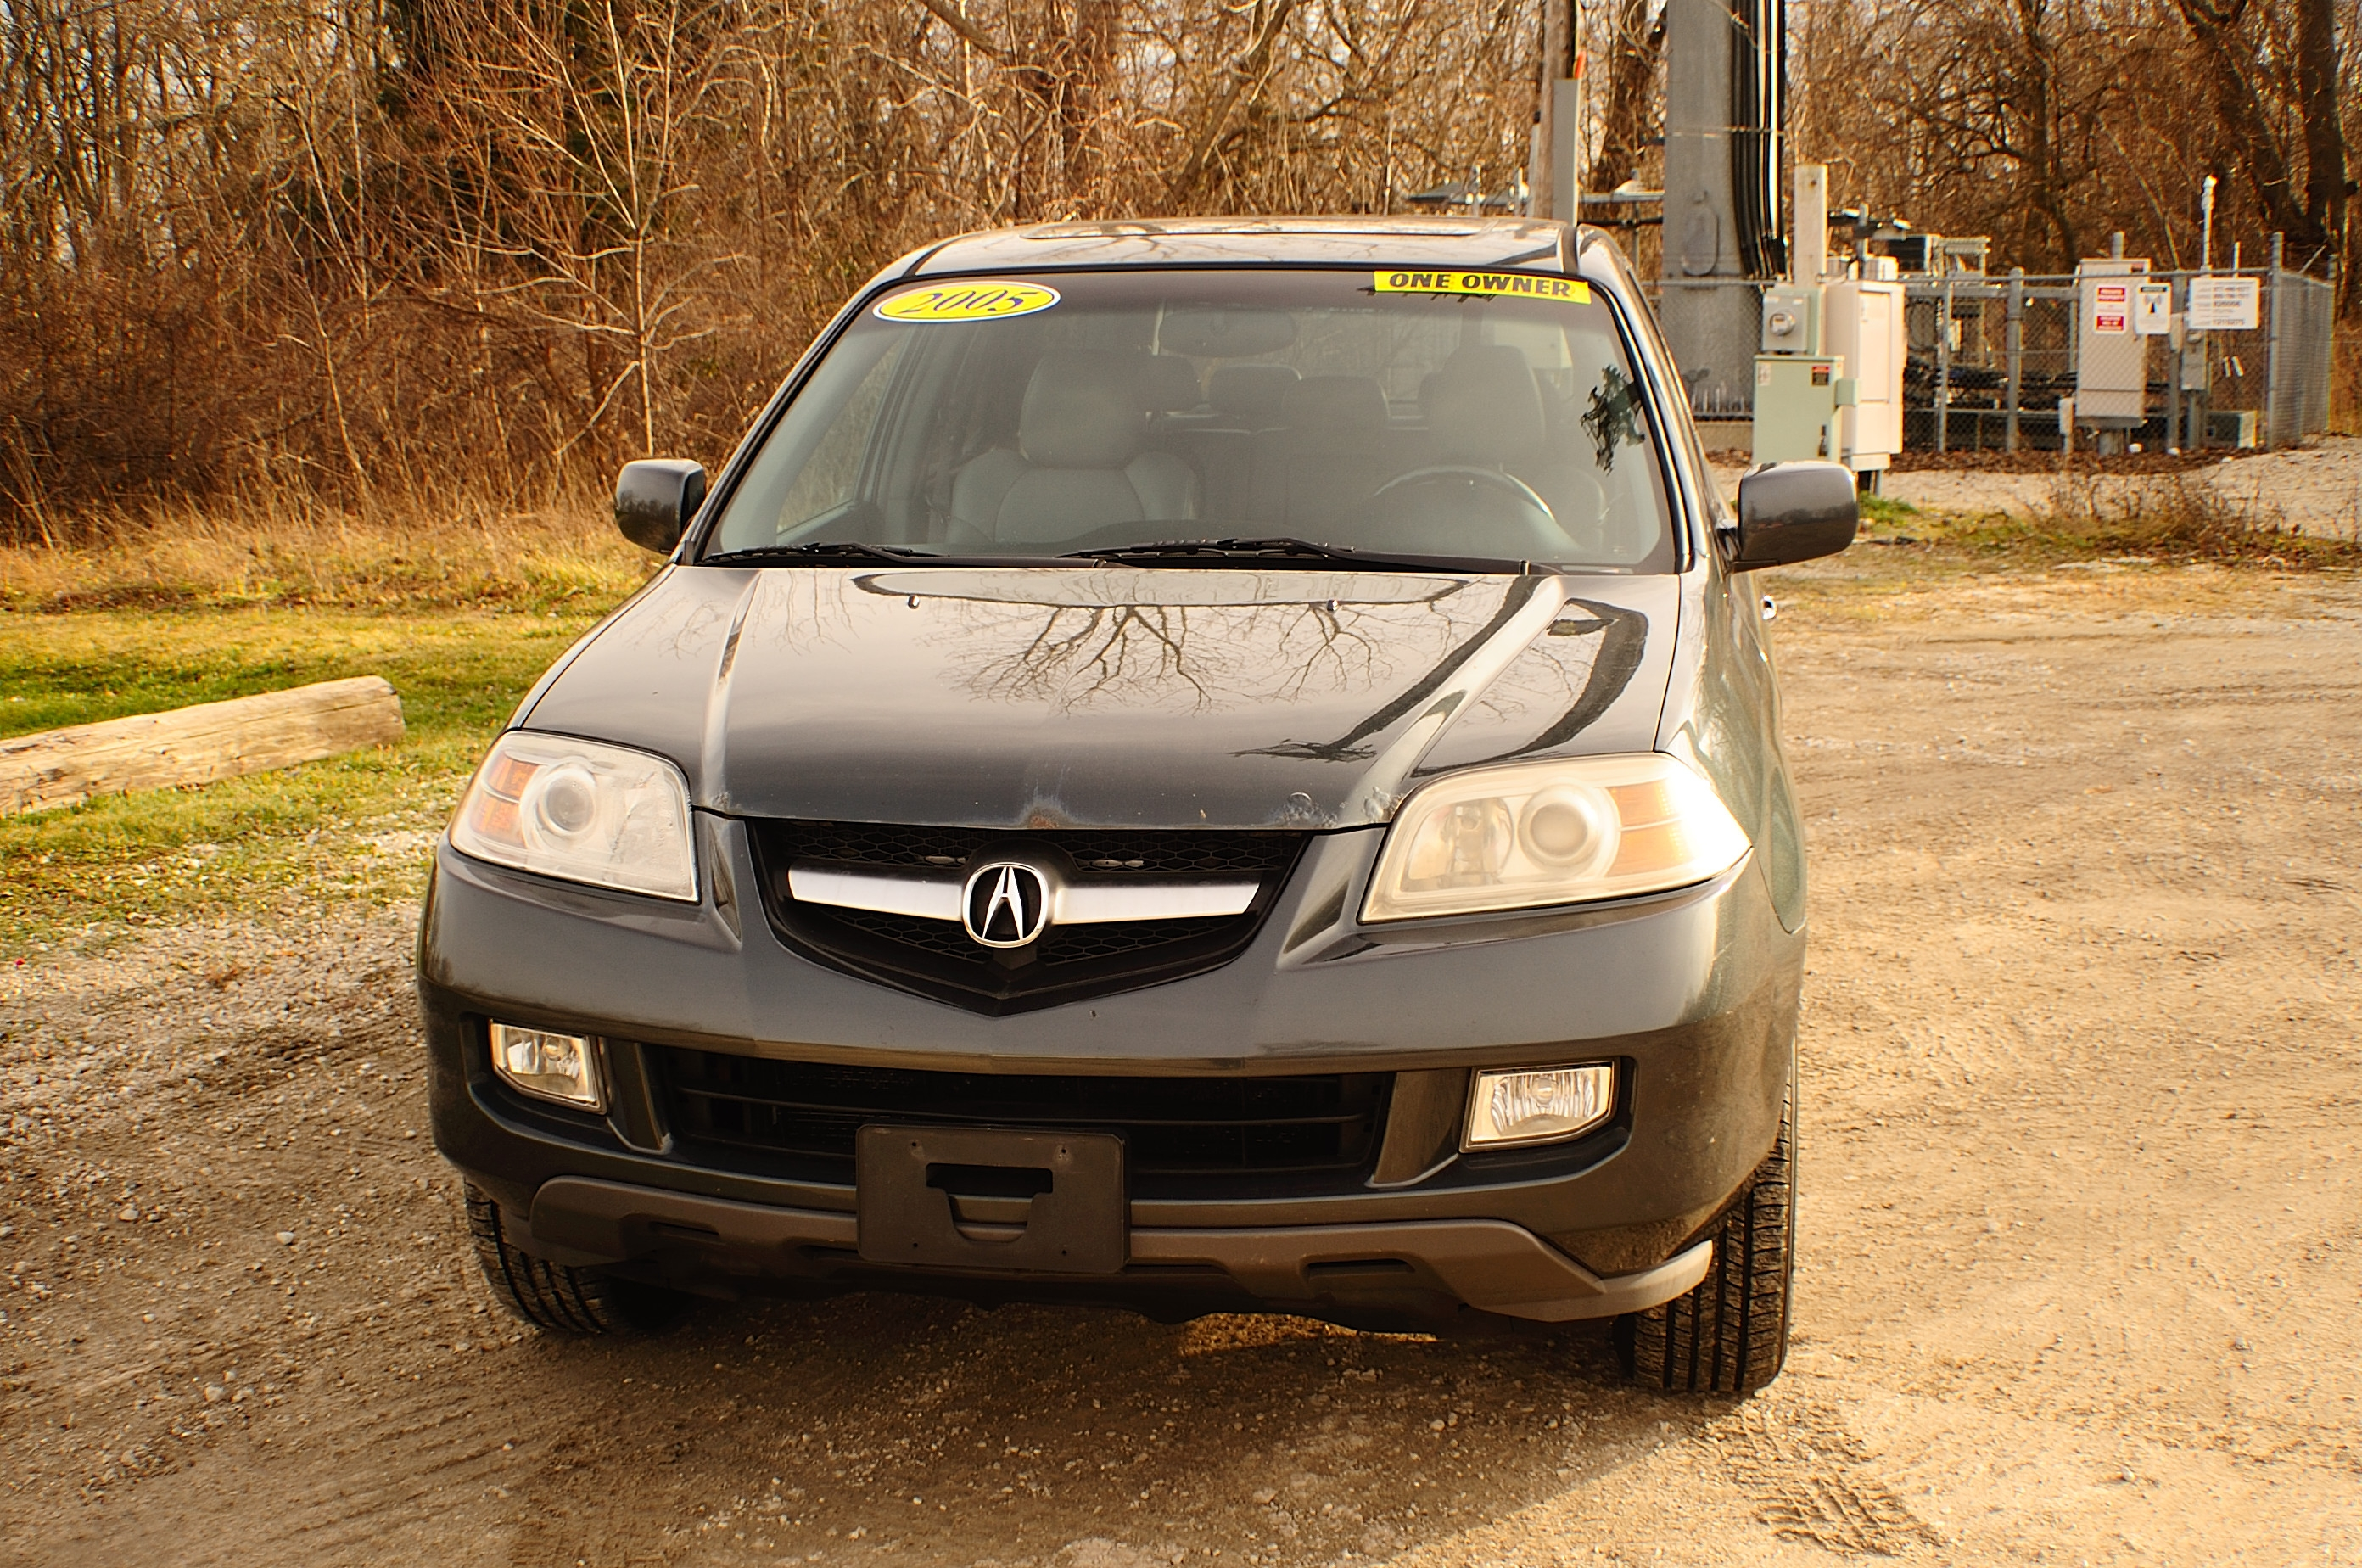 seattle in of bbdb sale view black acura lot en left mdx online auctions bill wa copart carfinder for auto on north